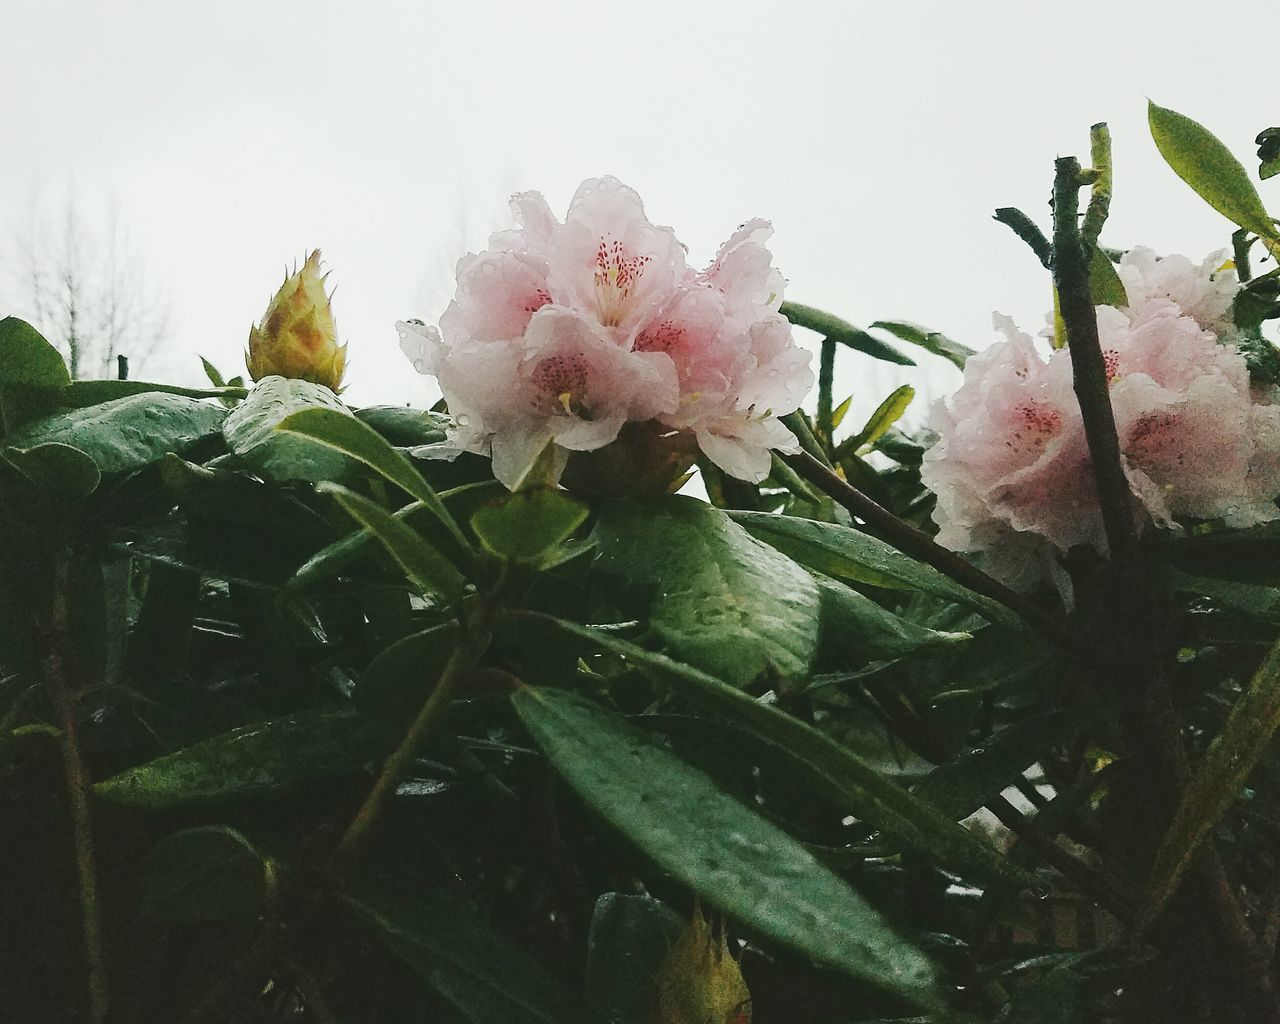 Flower Growth Plant Nature Rhododendron Blossoms Rain Drops On Petals